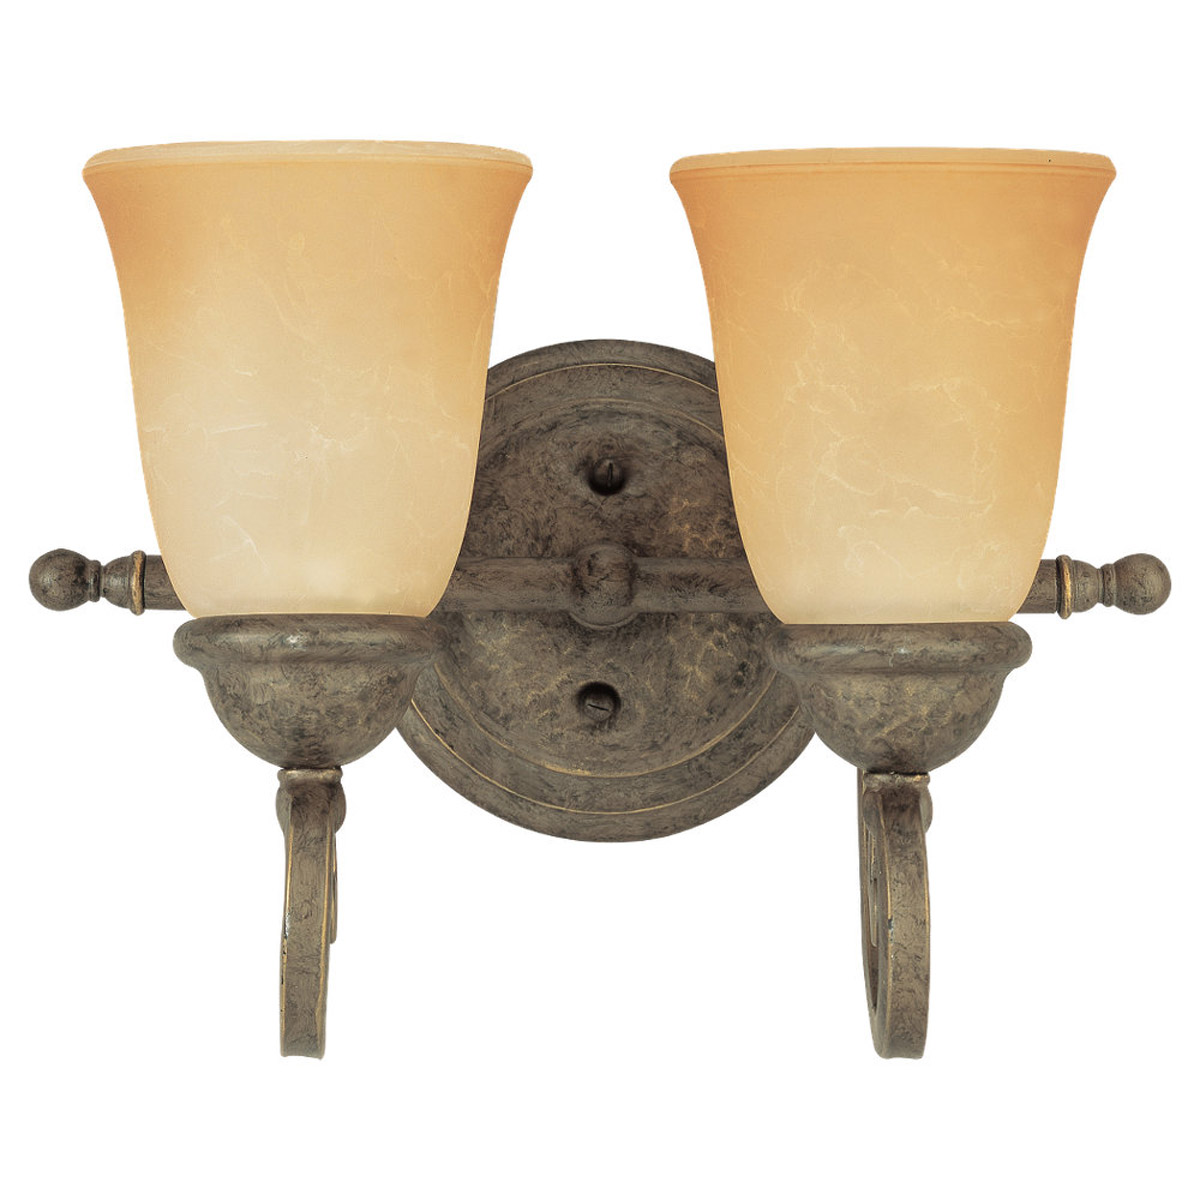 Sea Gull Lighting Brandywine 2 Light Bath Vanity in Antique Bronze 44430-71 photo